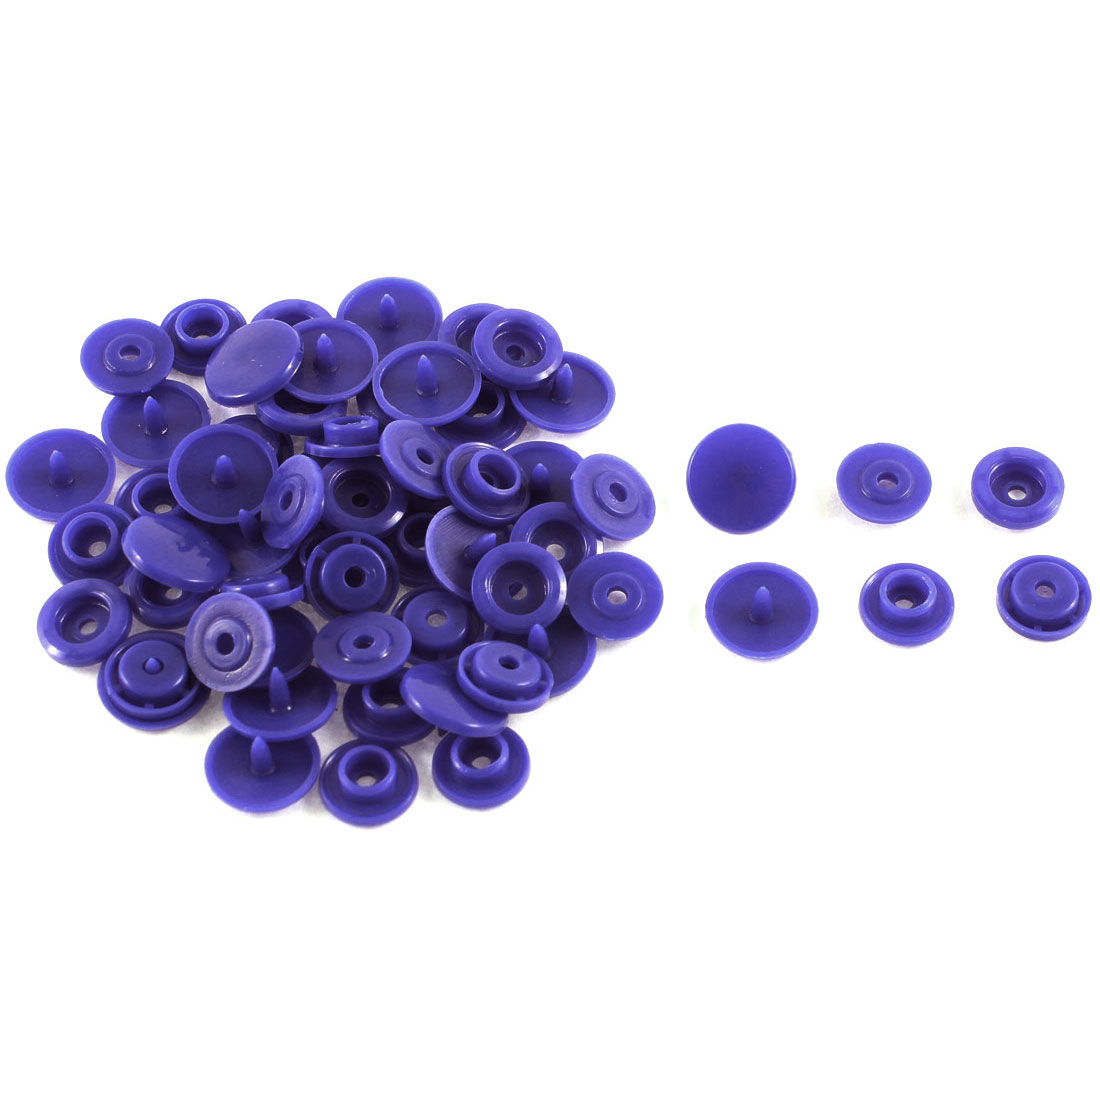 20 Pcs Dark Blue Plastic Sewing Snap Clothes Craft Press Fastener Buttons